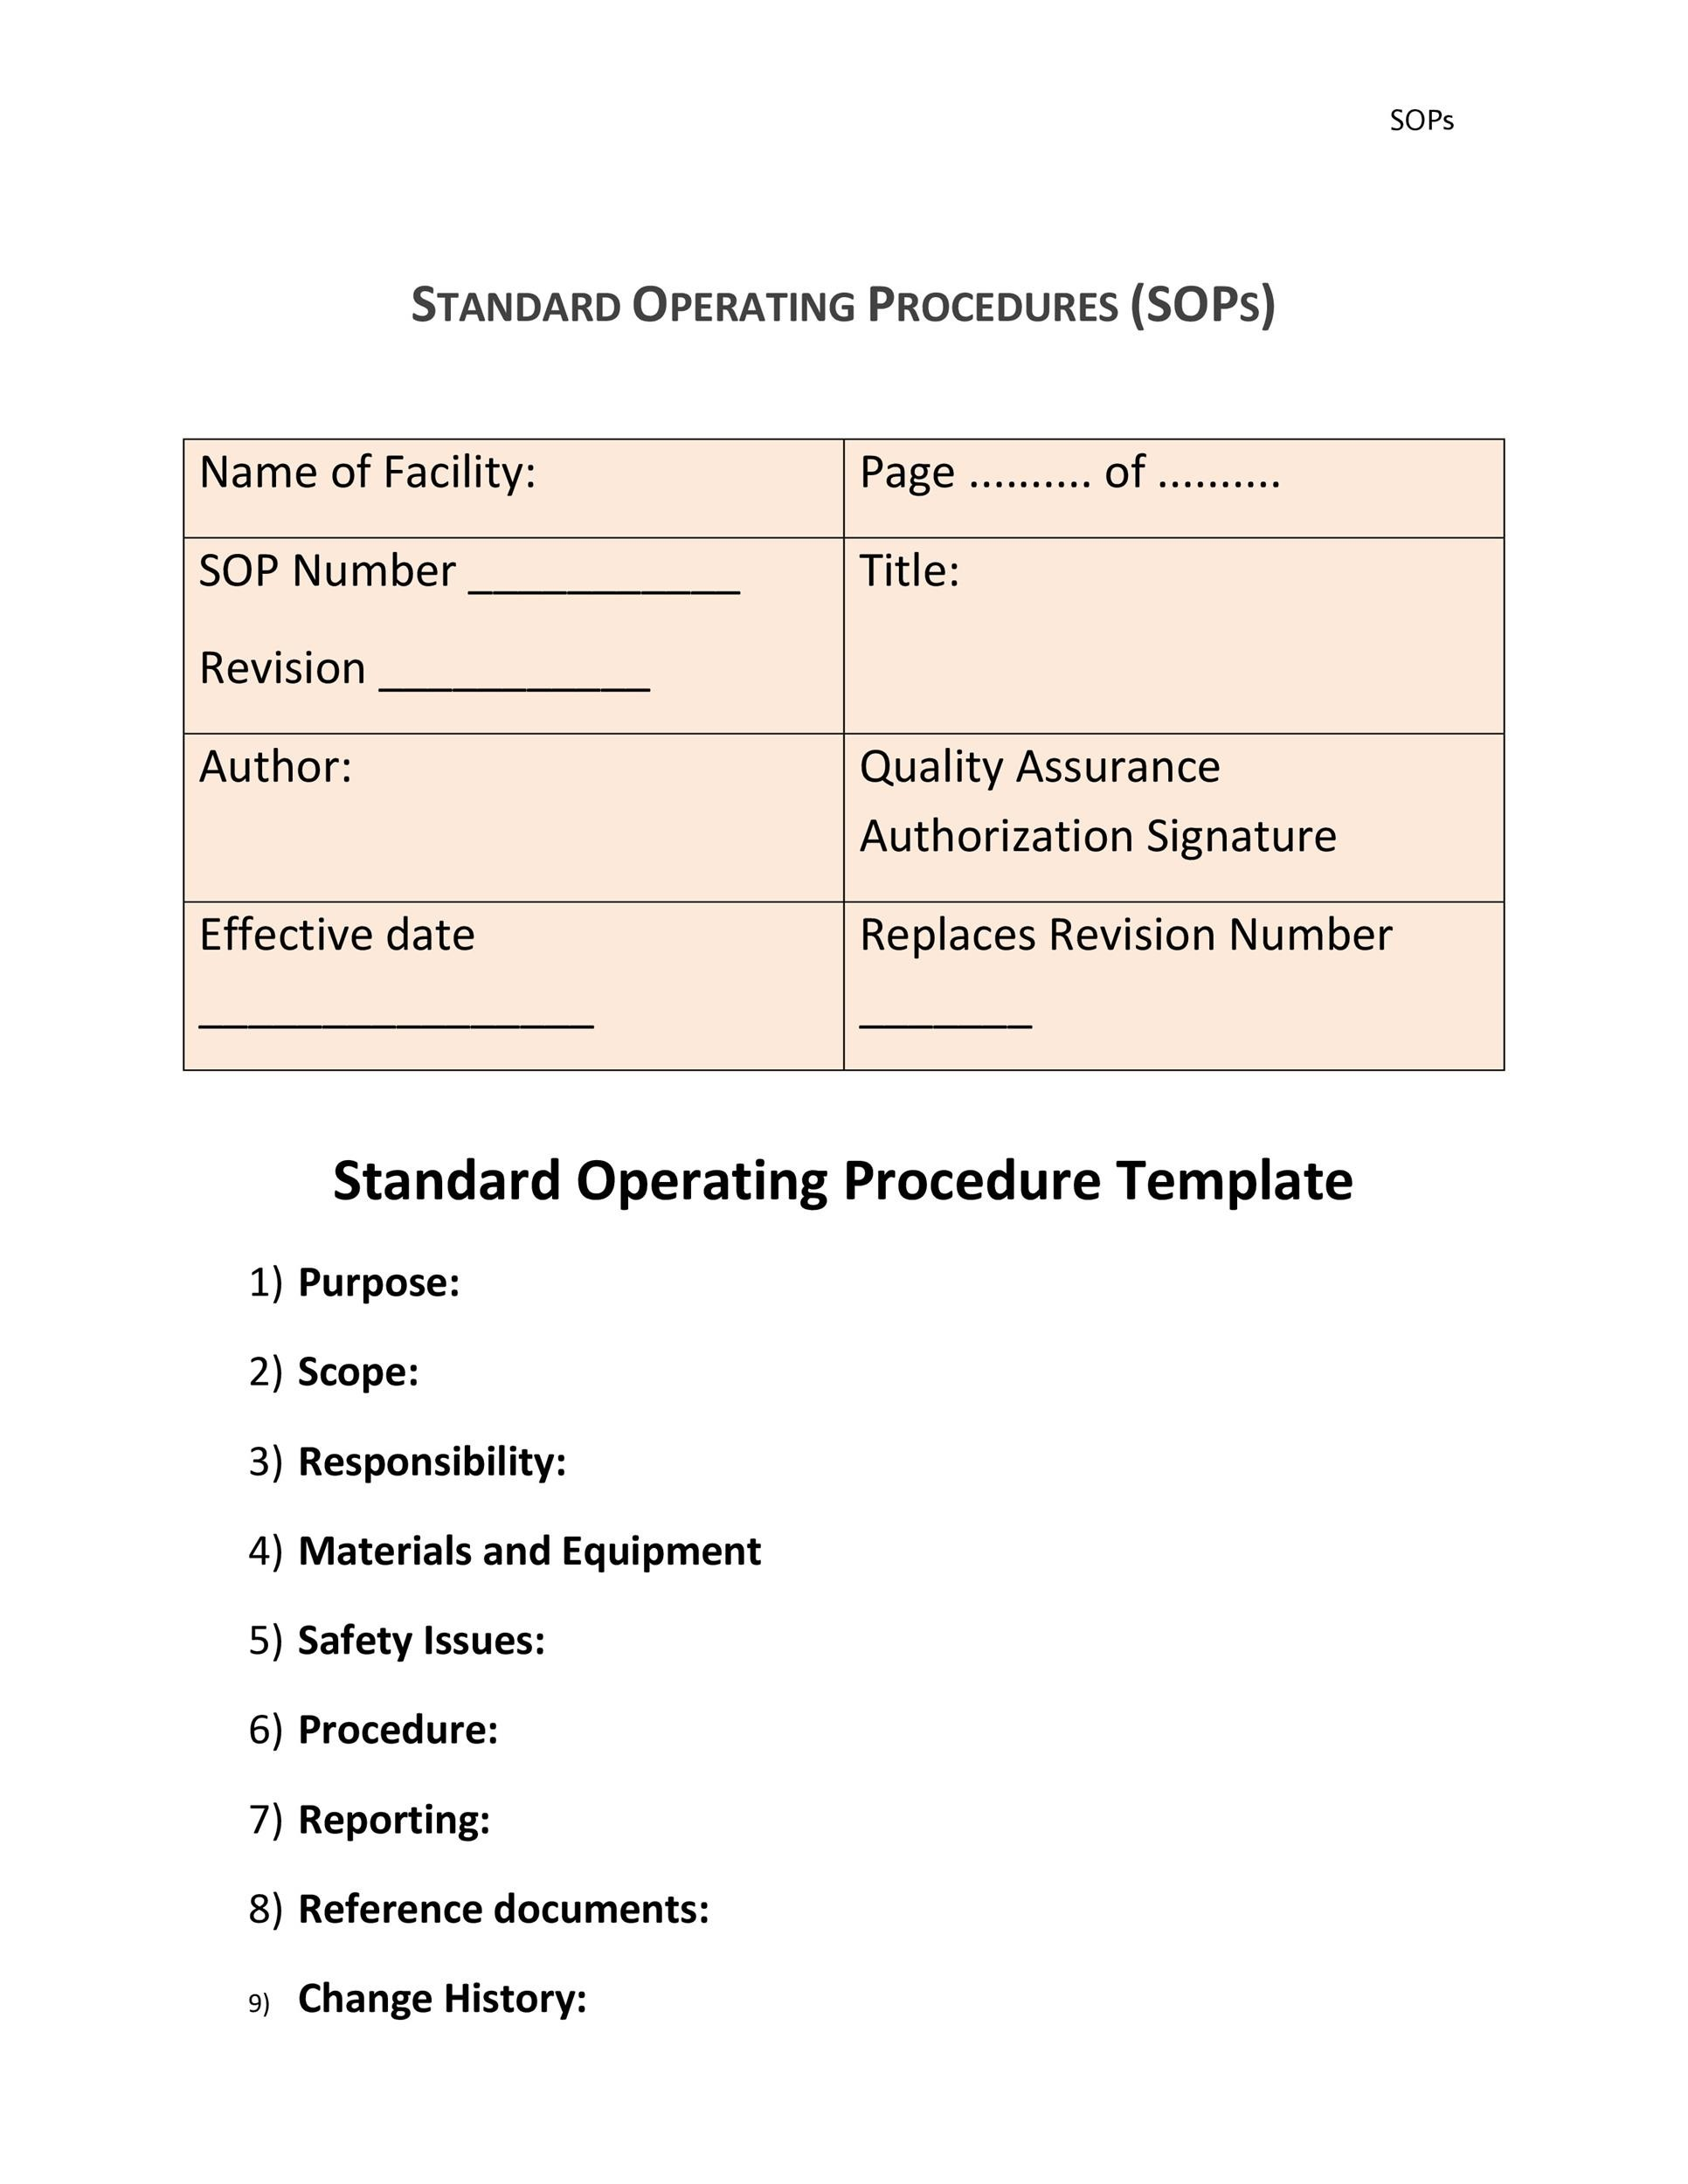 Exceptional Printable SOP Templates 29  Procedure Templates